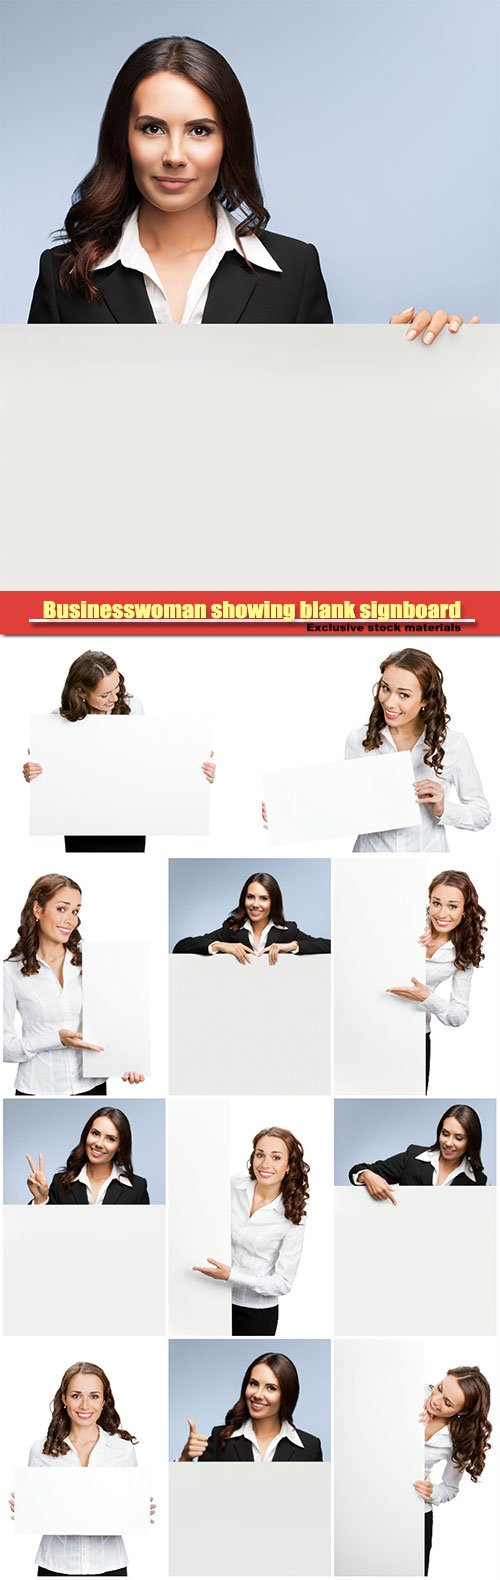 Businesswoman showing blank signboard